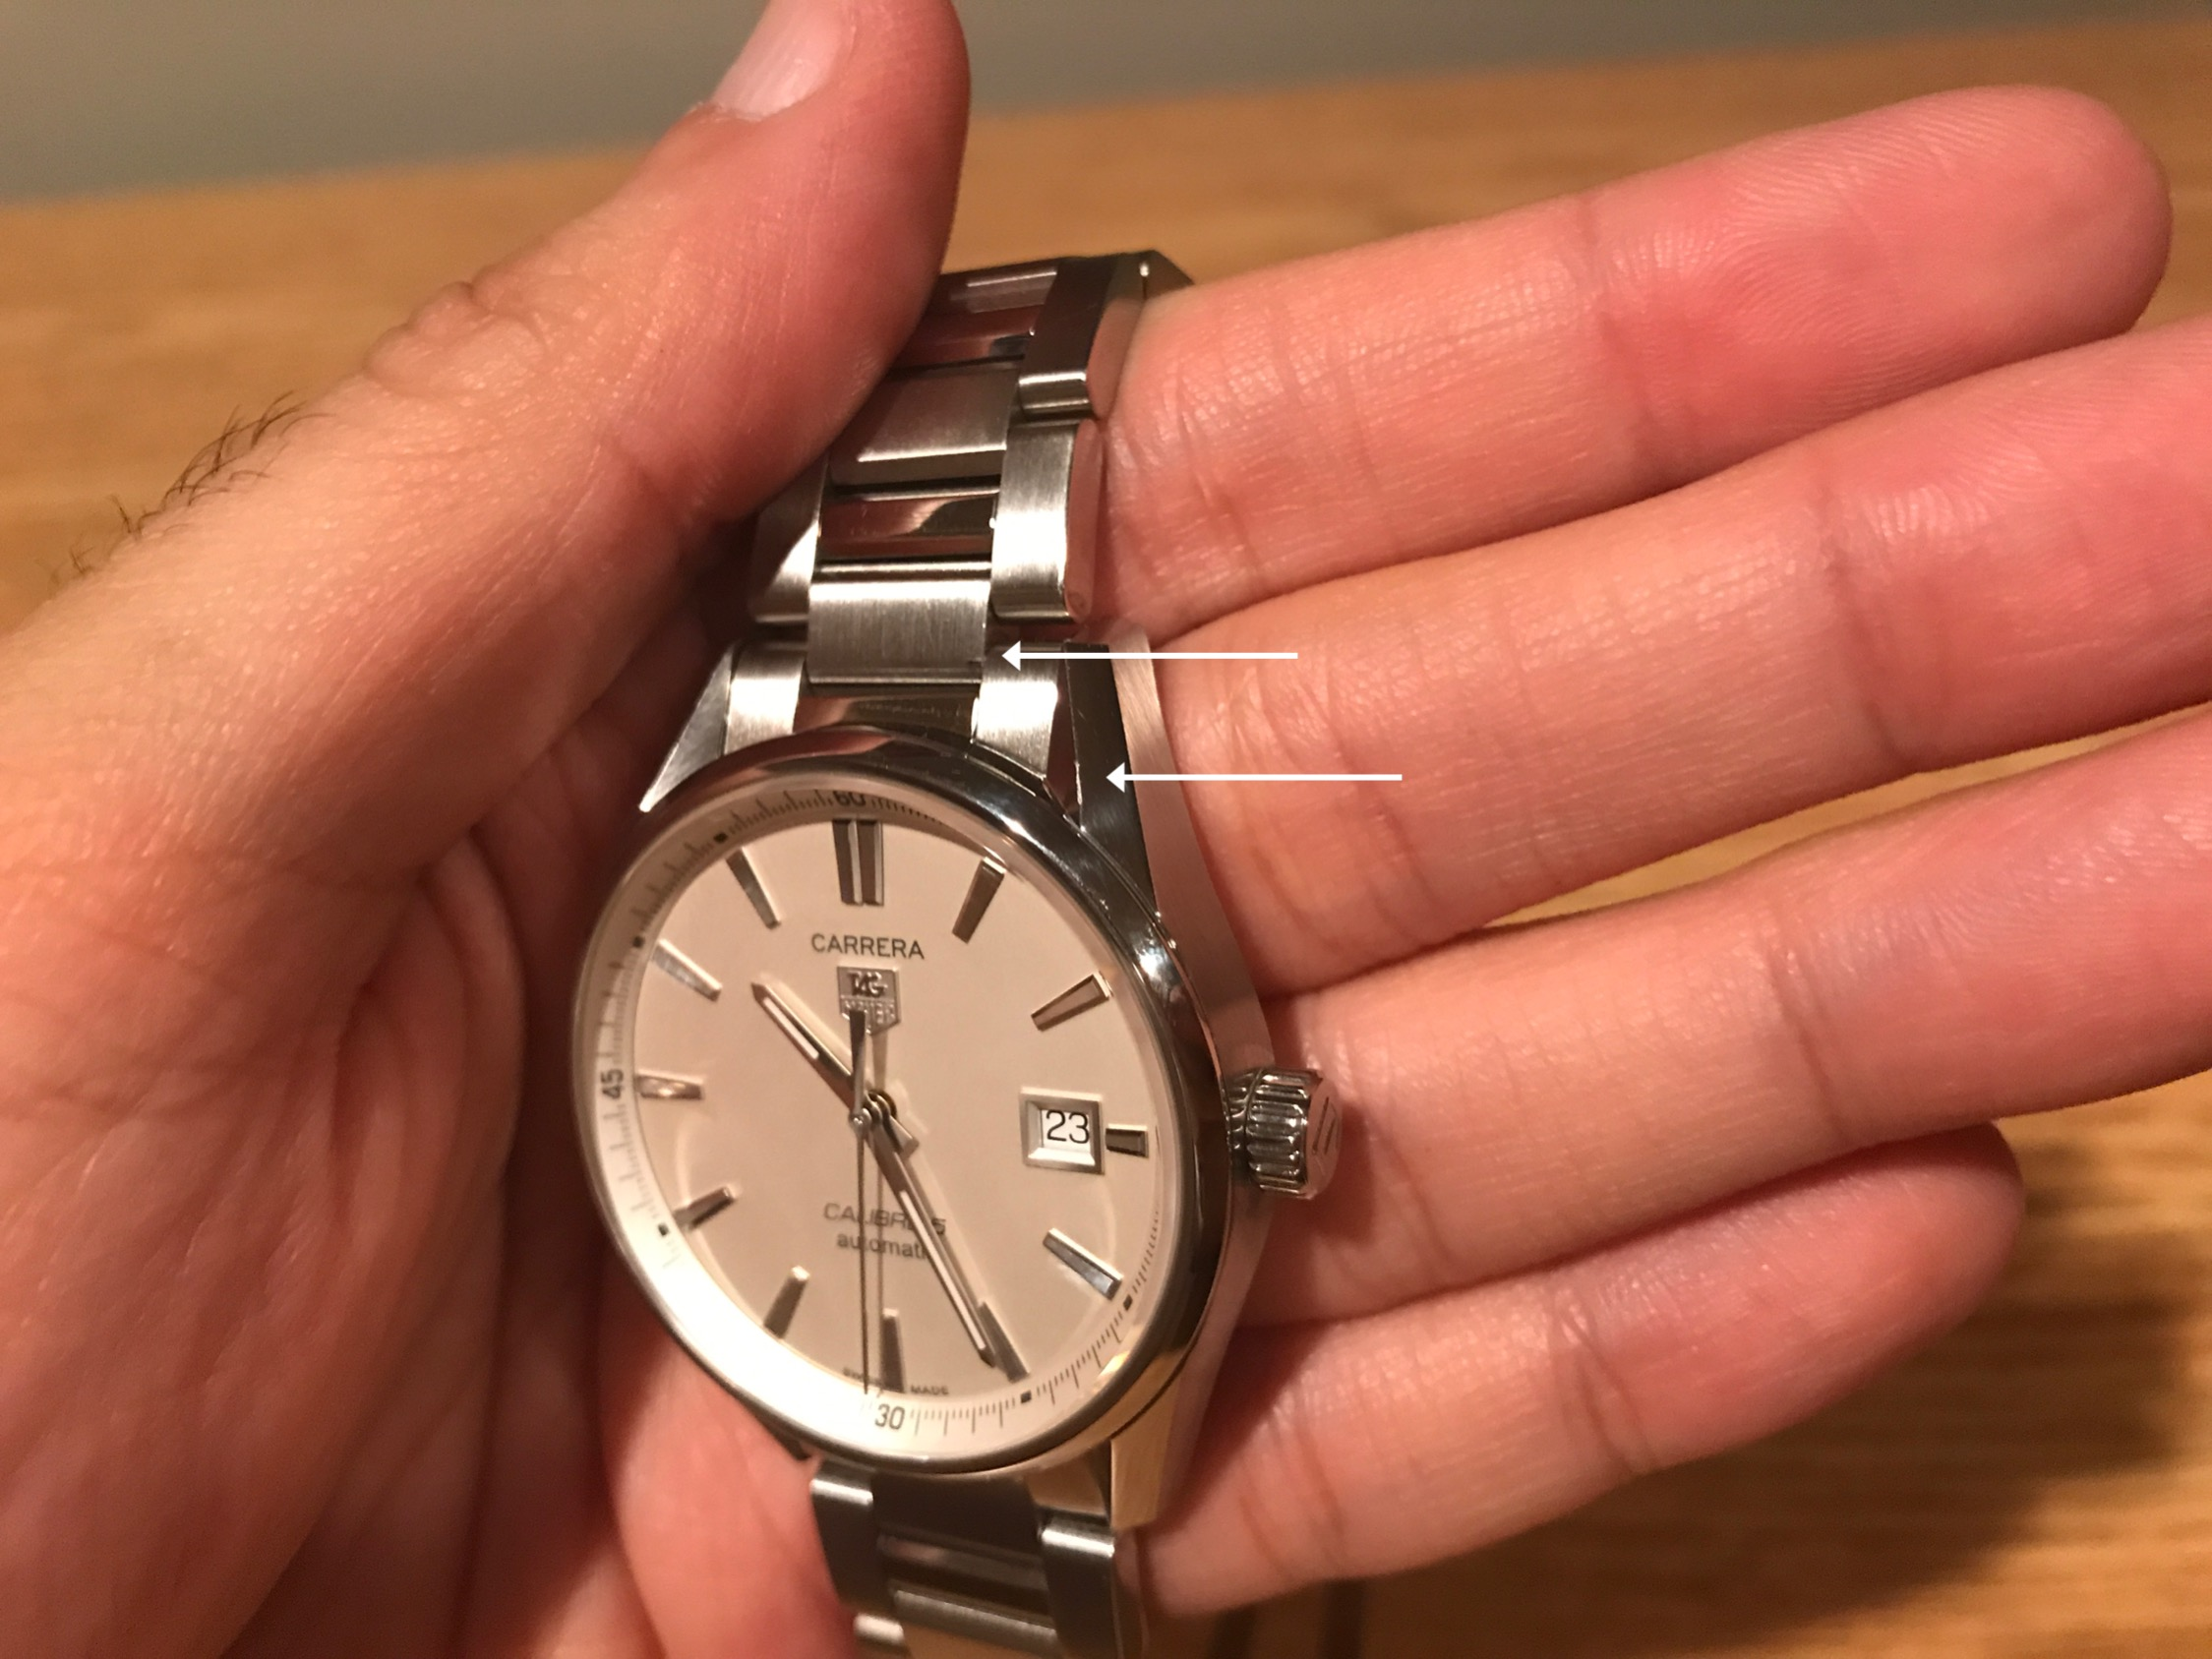 Scratches on new Jomashop watch